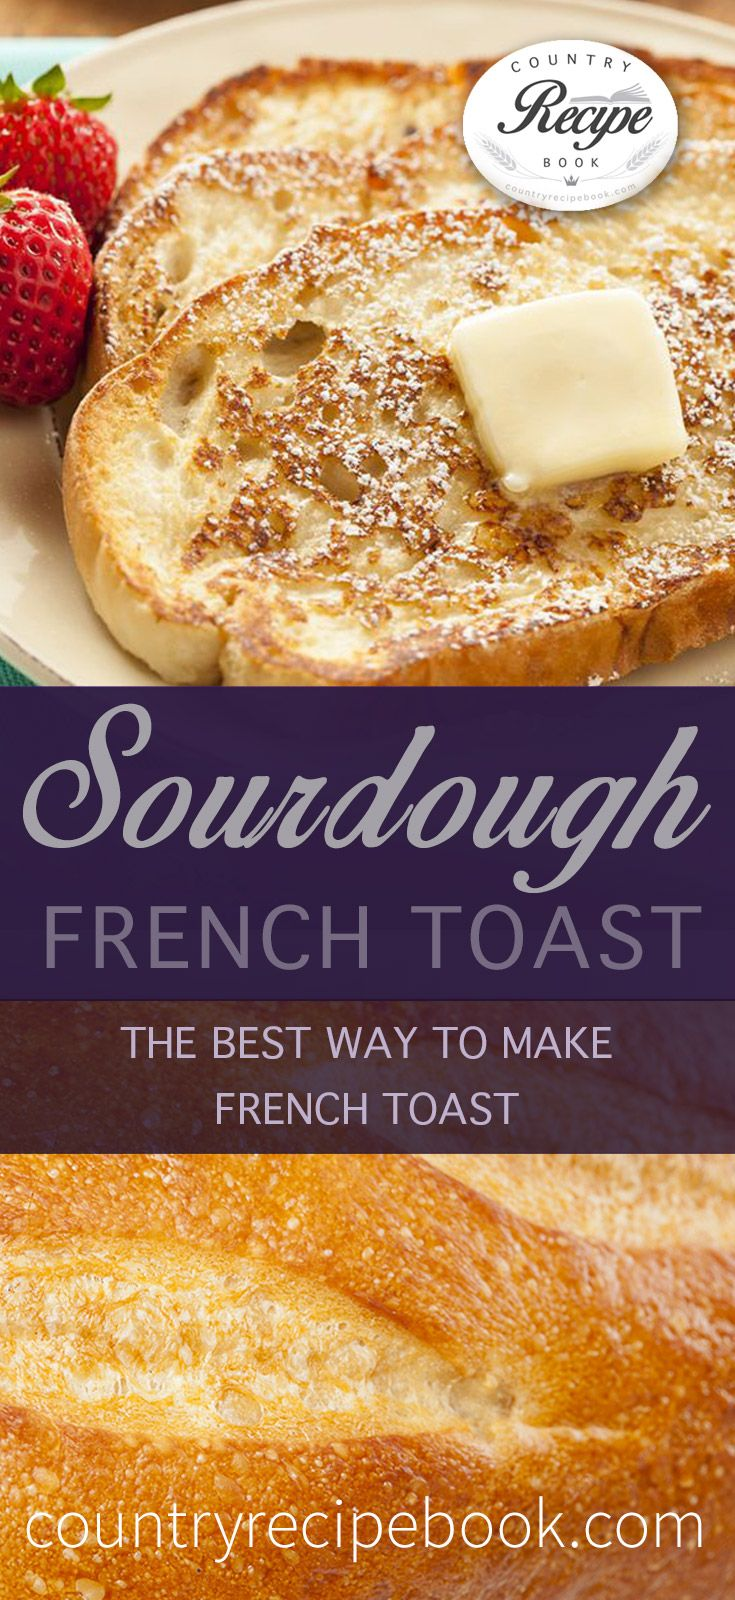 Easy Sourdough French Toast Recipe. Sourdough is simple the best way to make French Toast